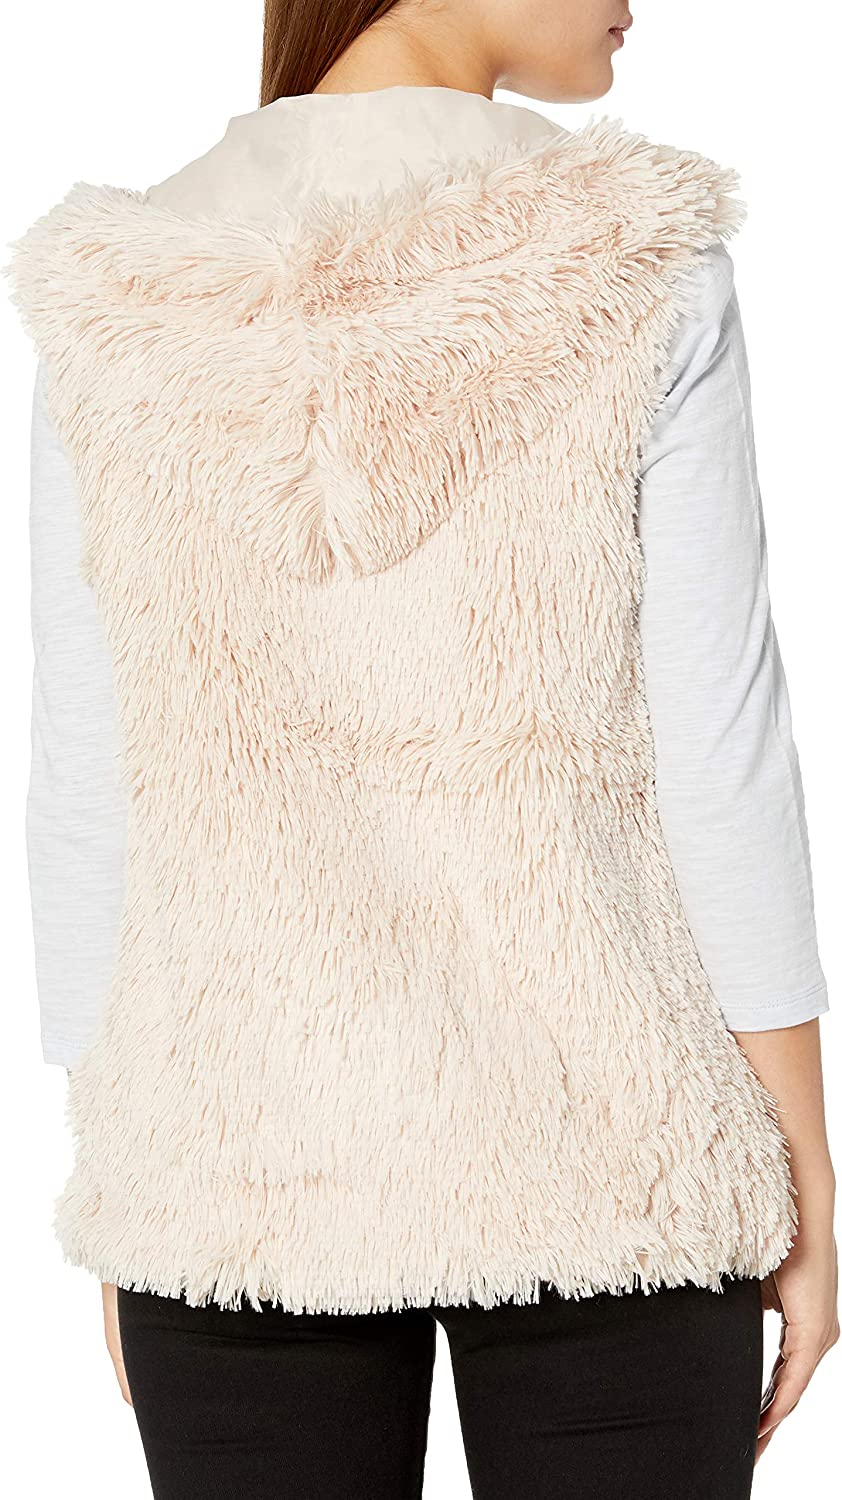 Angie Womens Faux Fur Zip Front Hooded Vest Small tan